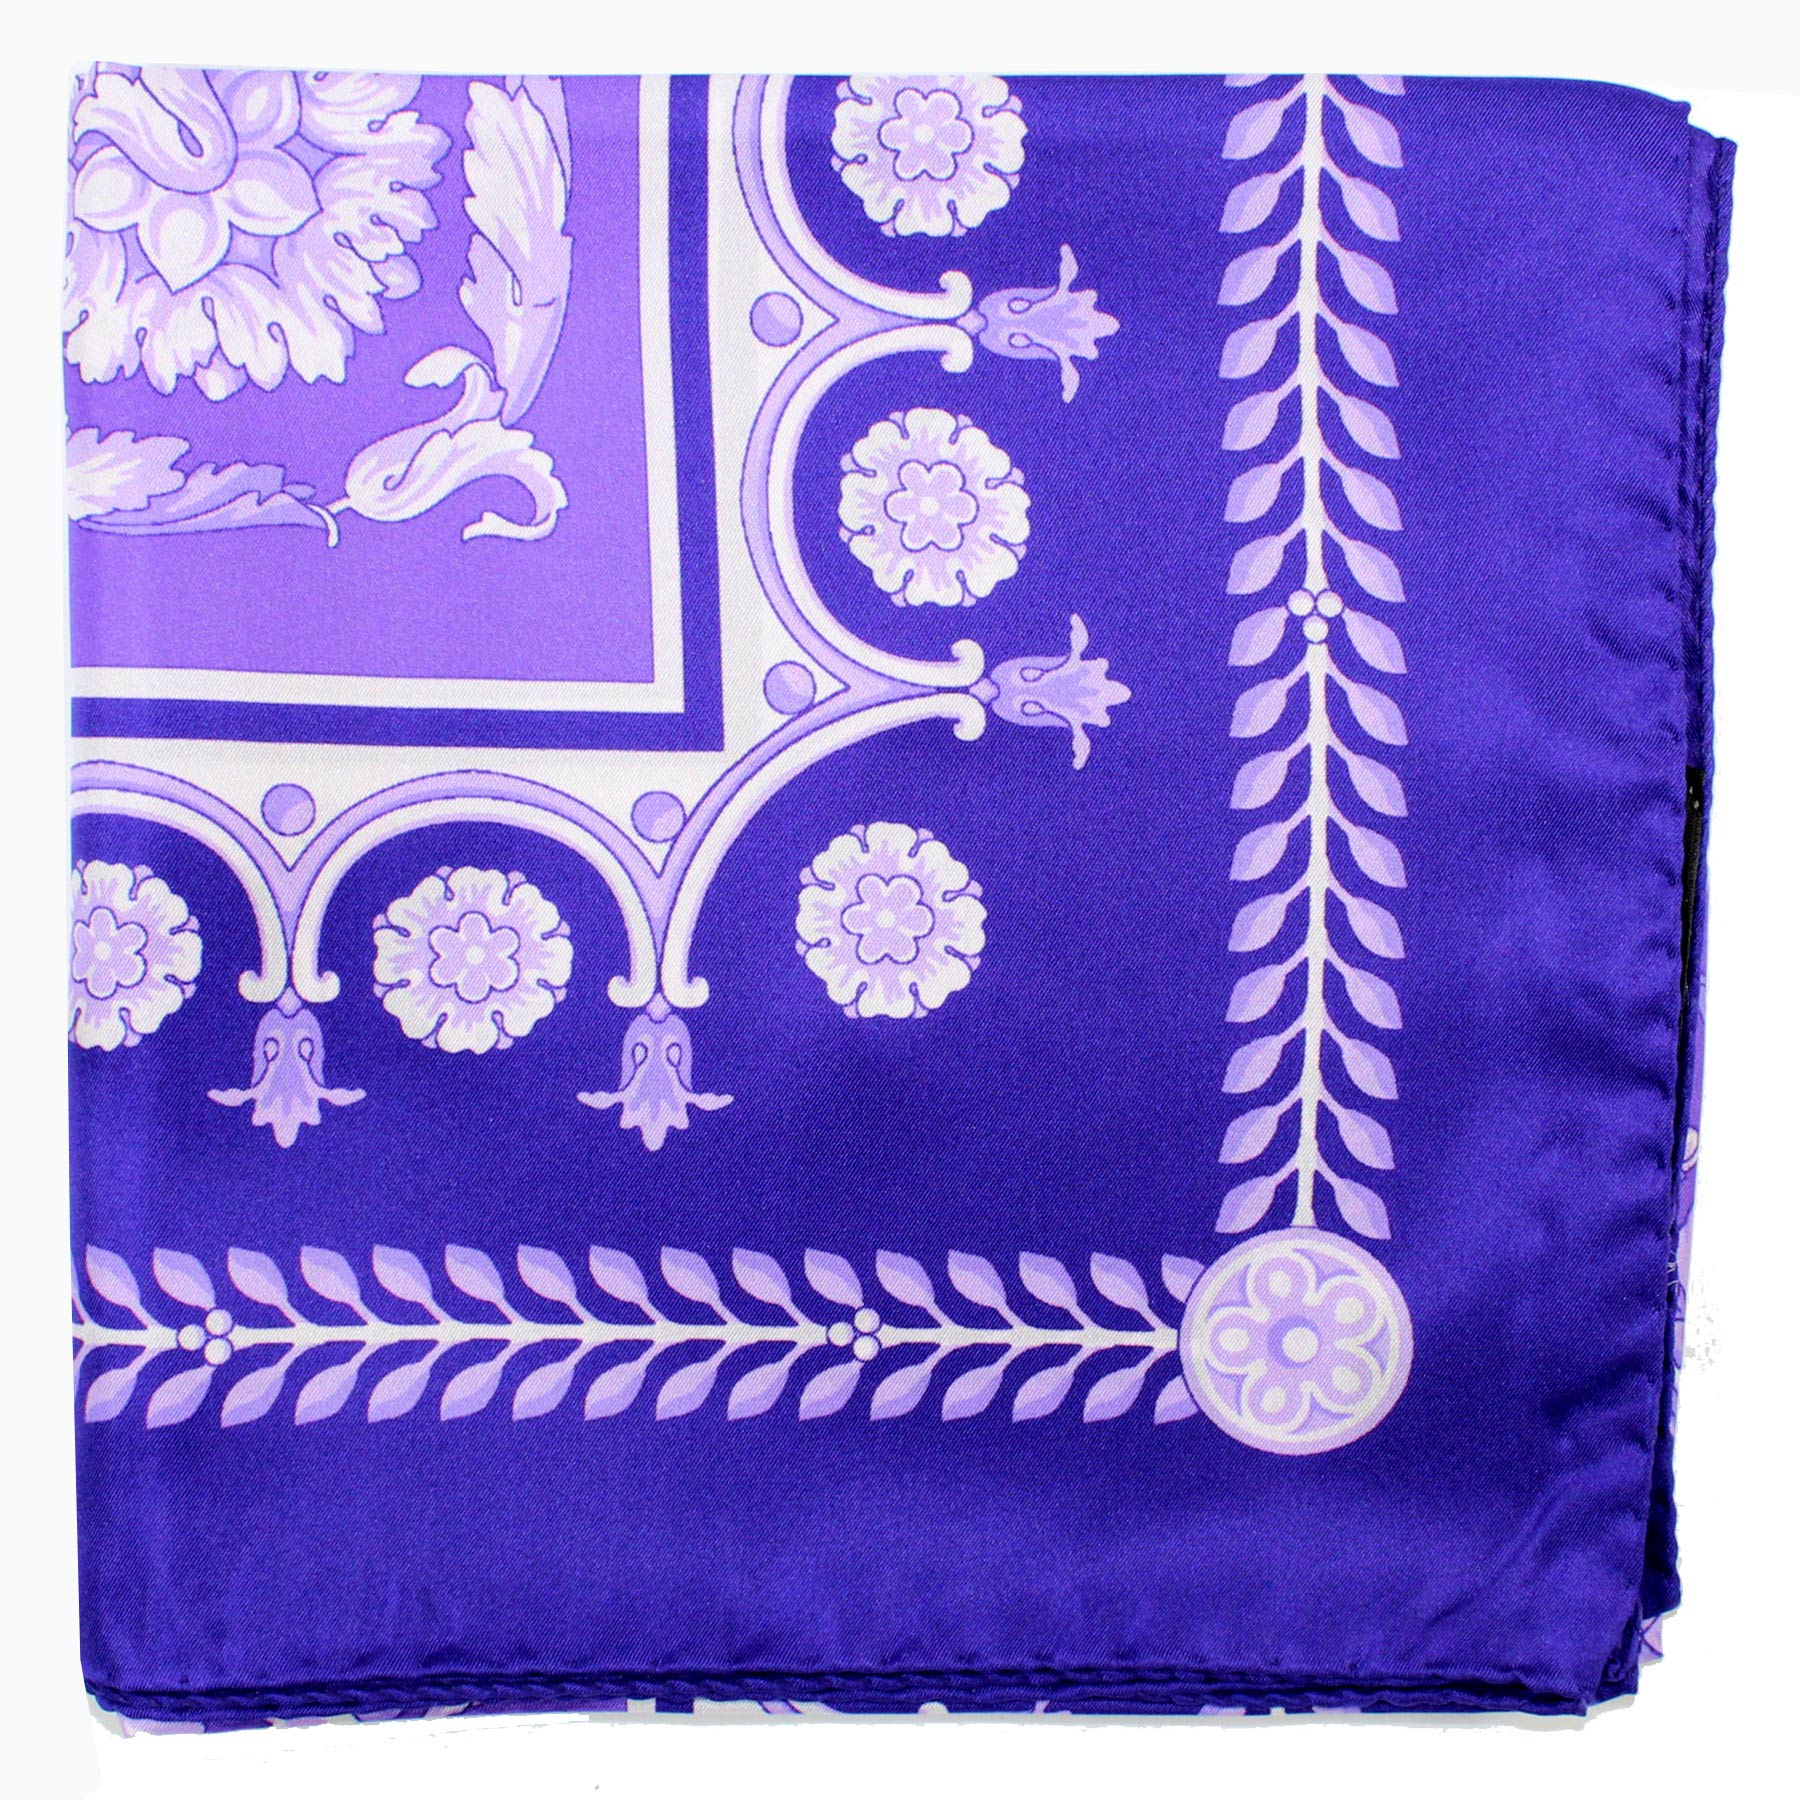 Versace Scarf Purple Baroque - Large Twill Silk Square Scarf SALE